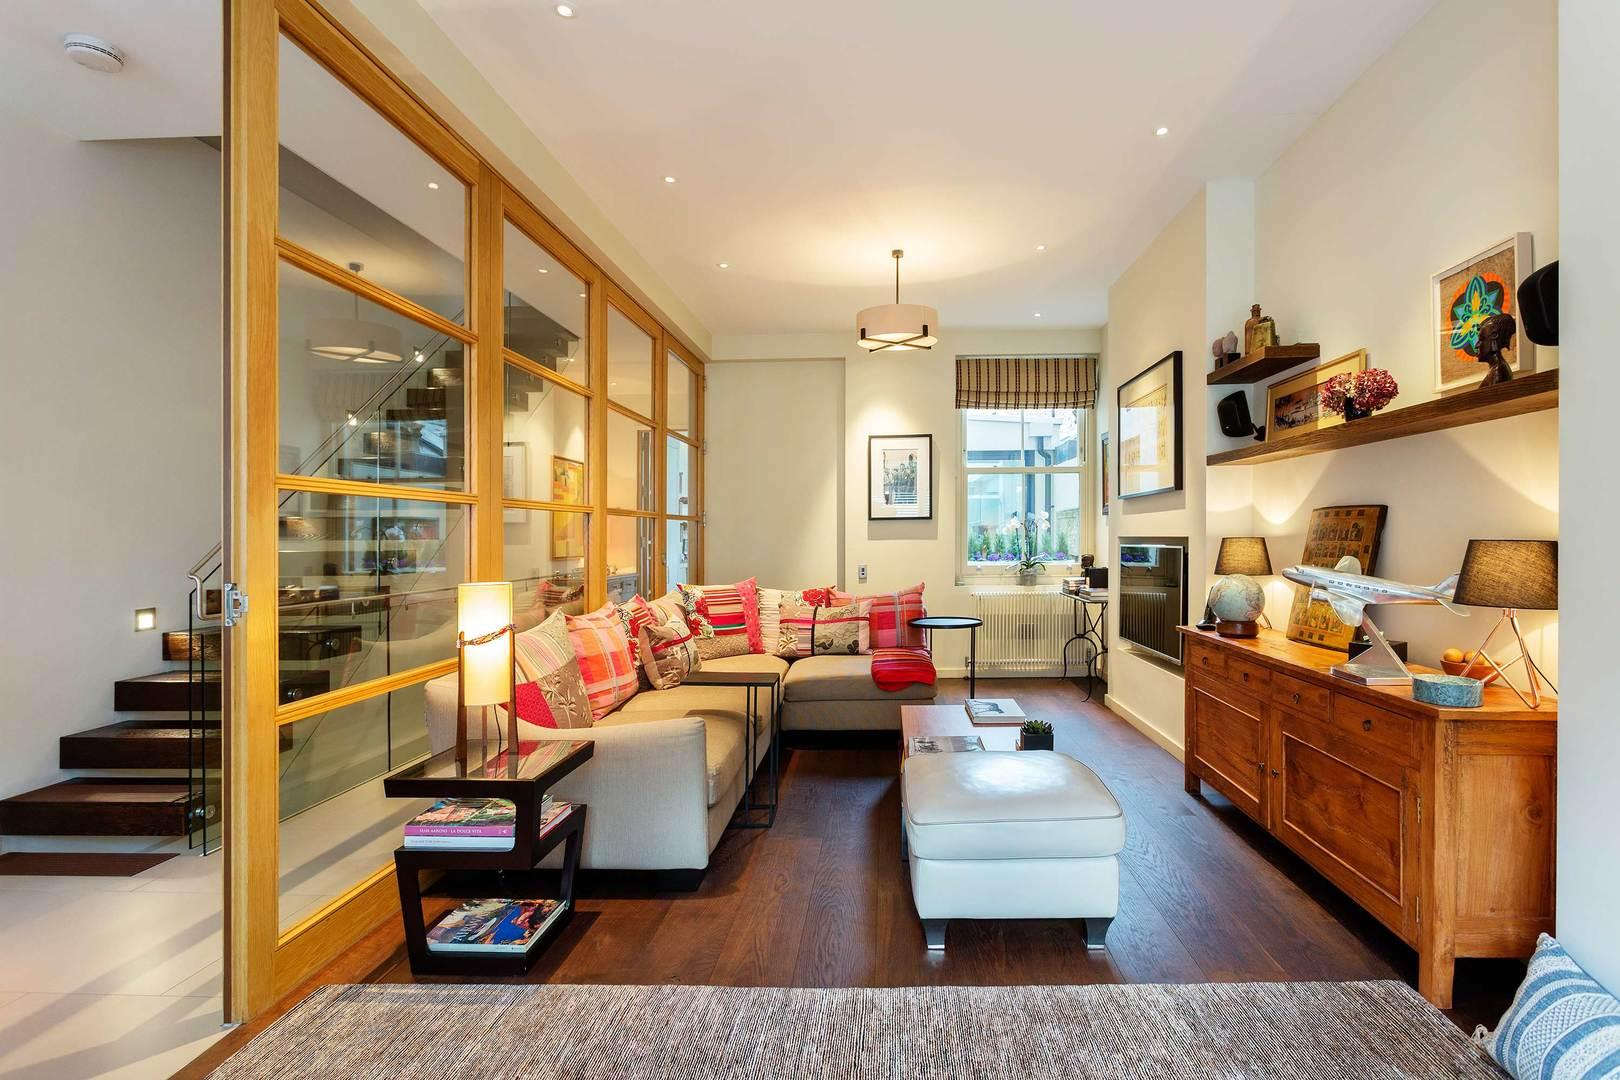 Property Image 2 - Decedant Fulham House with Private Cinema Room